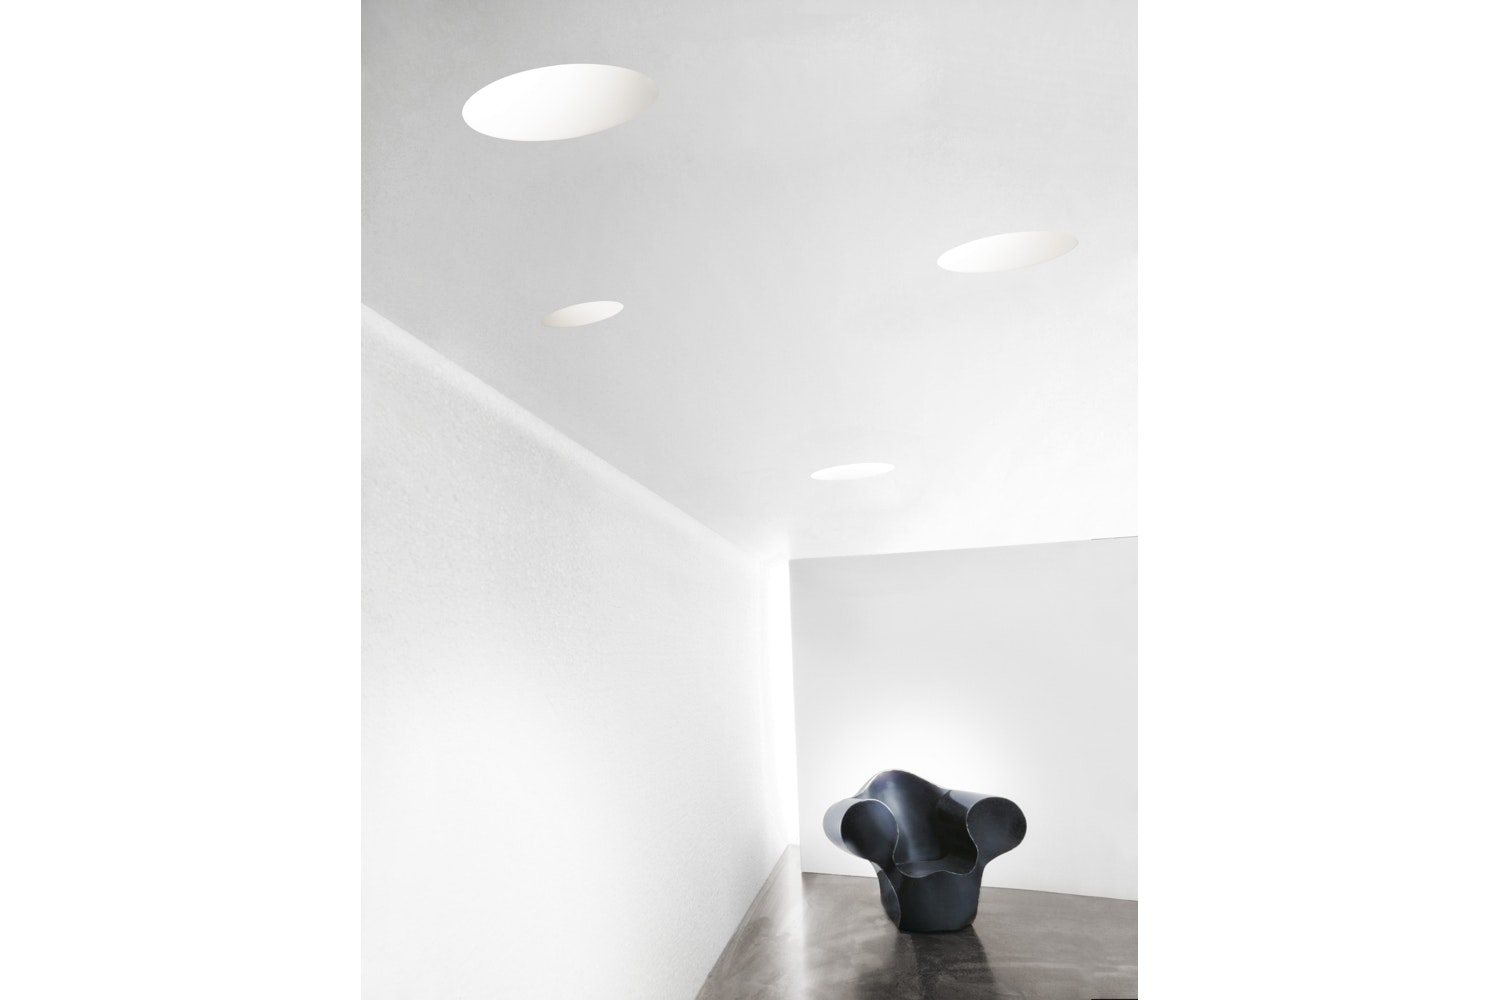 Light Cone Ceiling Lamp by Ingo Maurer for Ingo Maurer